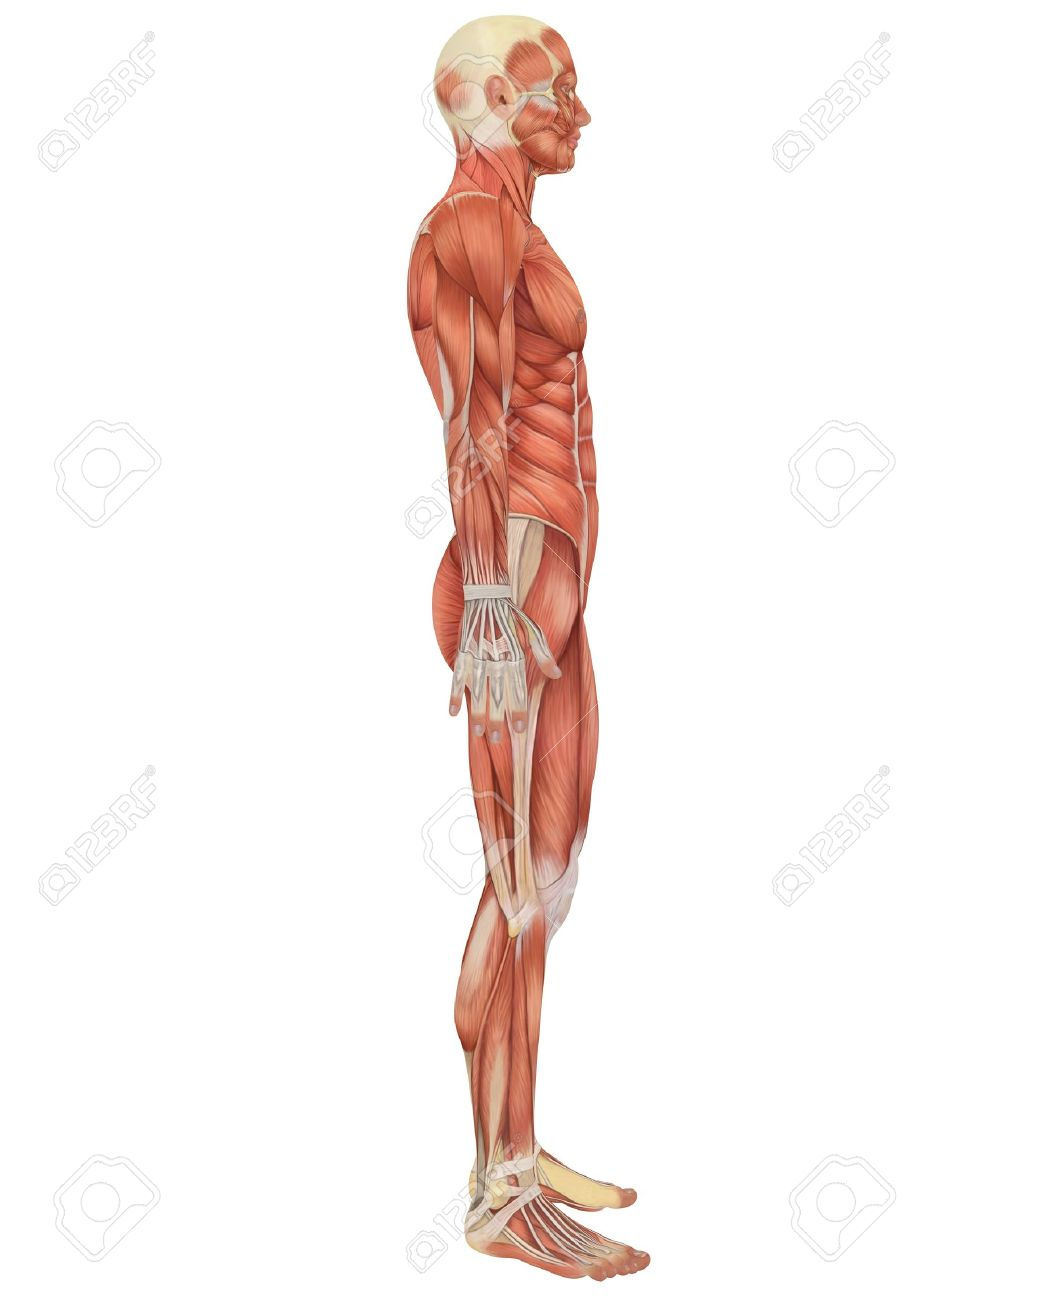 A Illustration Of The Side View Of The Male Muscular Anatomy